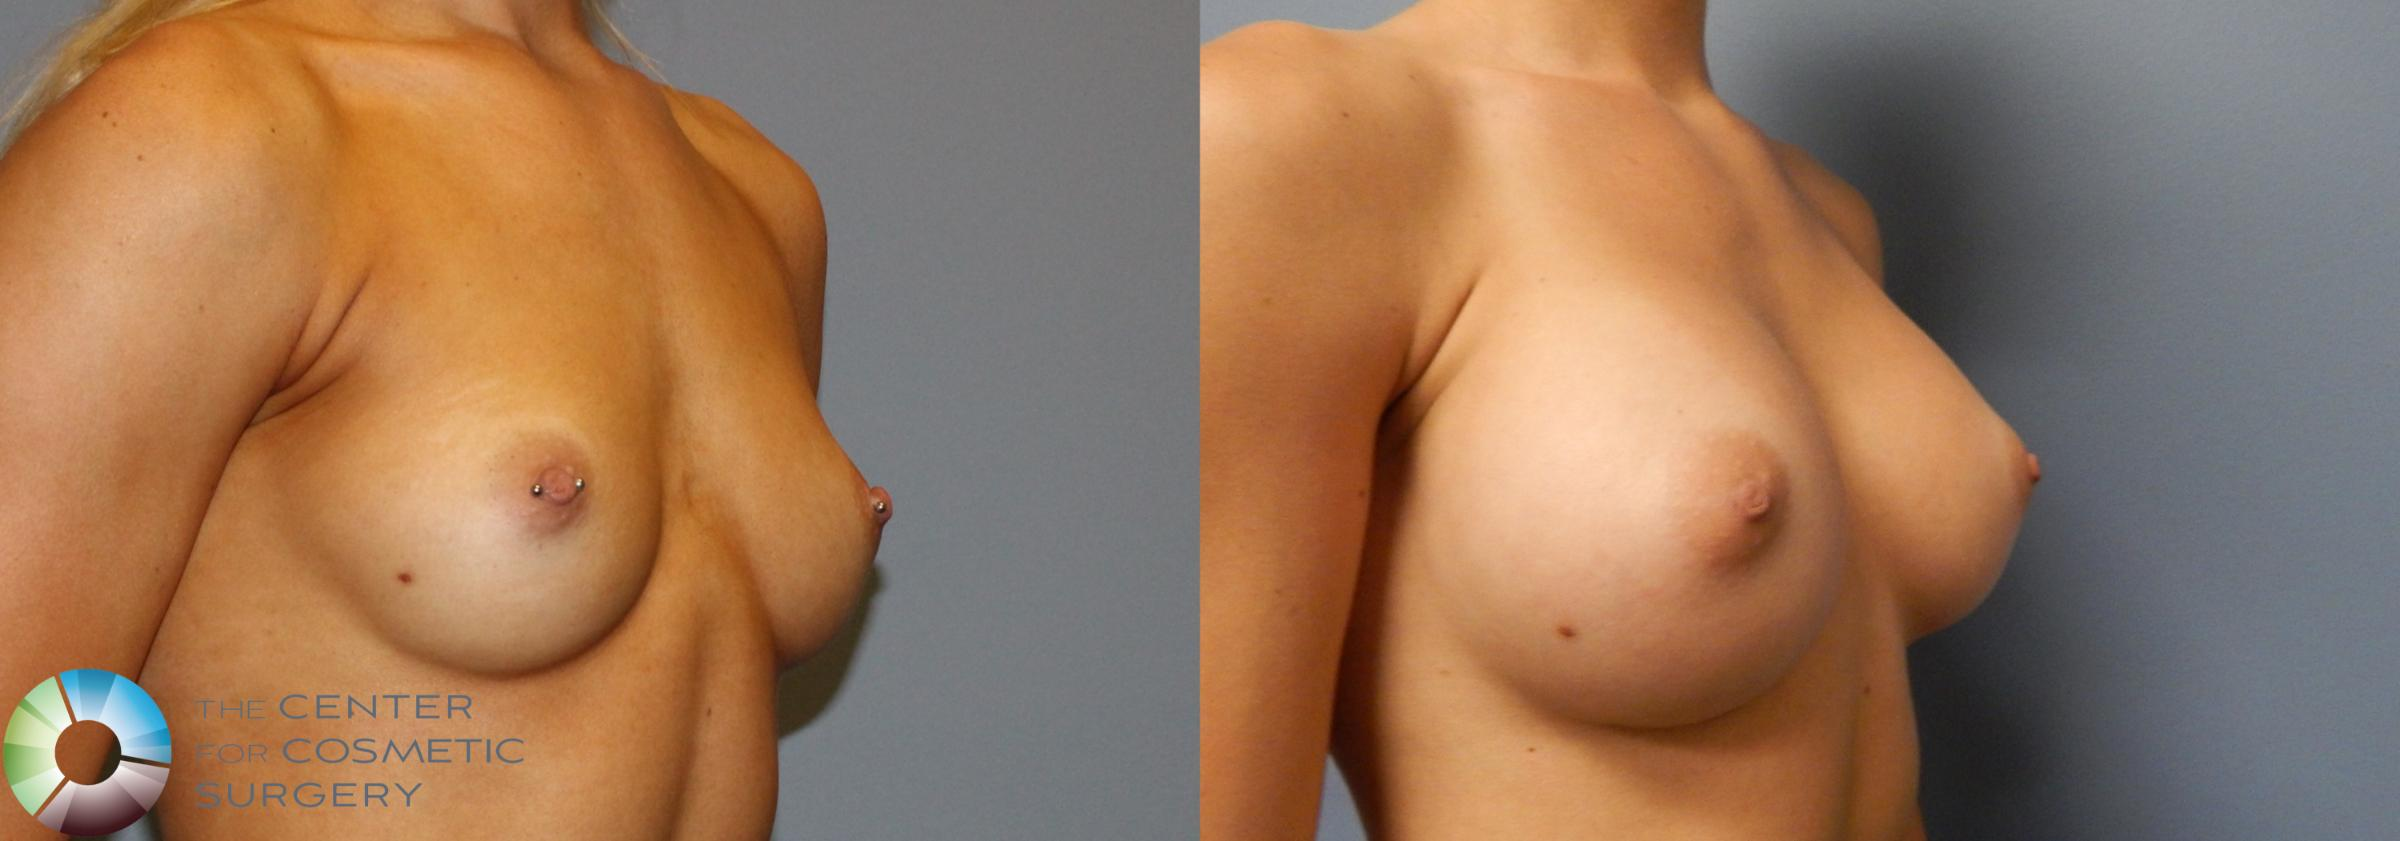 Breast Augmentation Case 860 Before & After View #2 | Golden, CO | The Center for Cosmetic Surgery